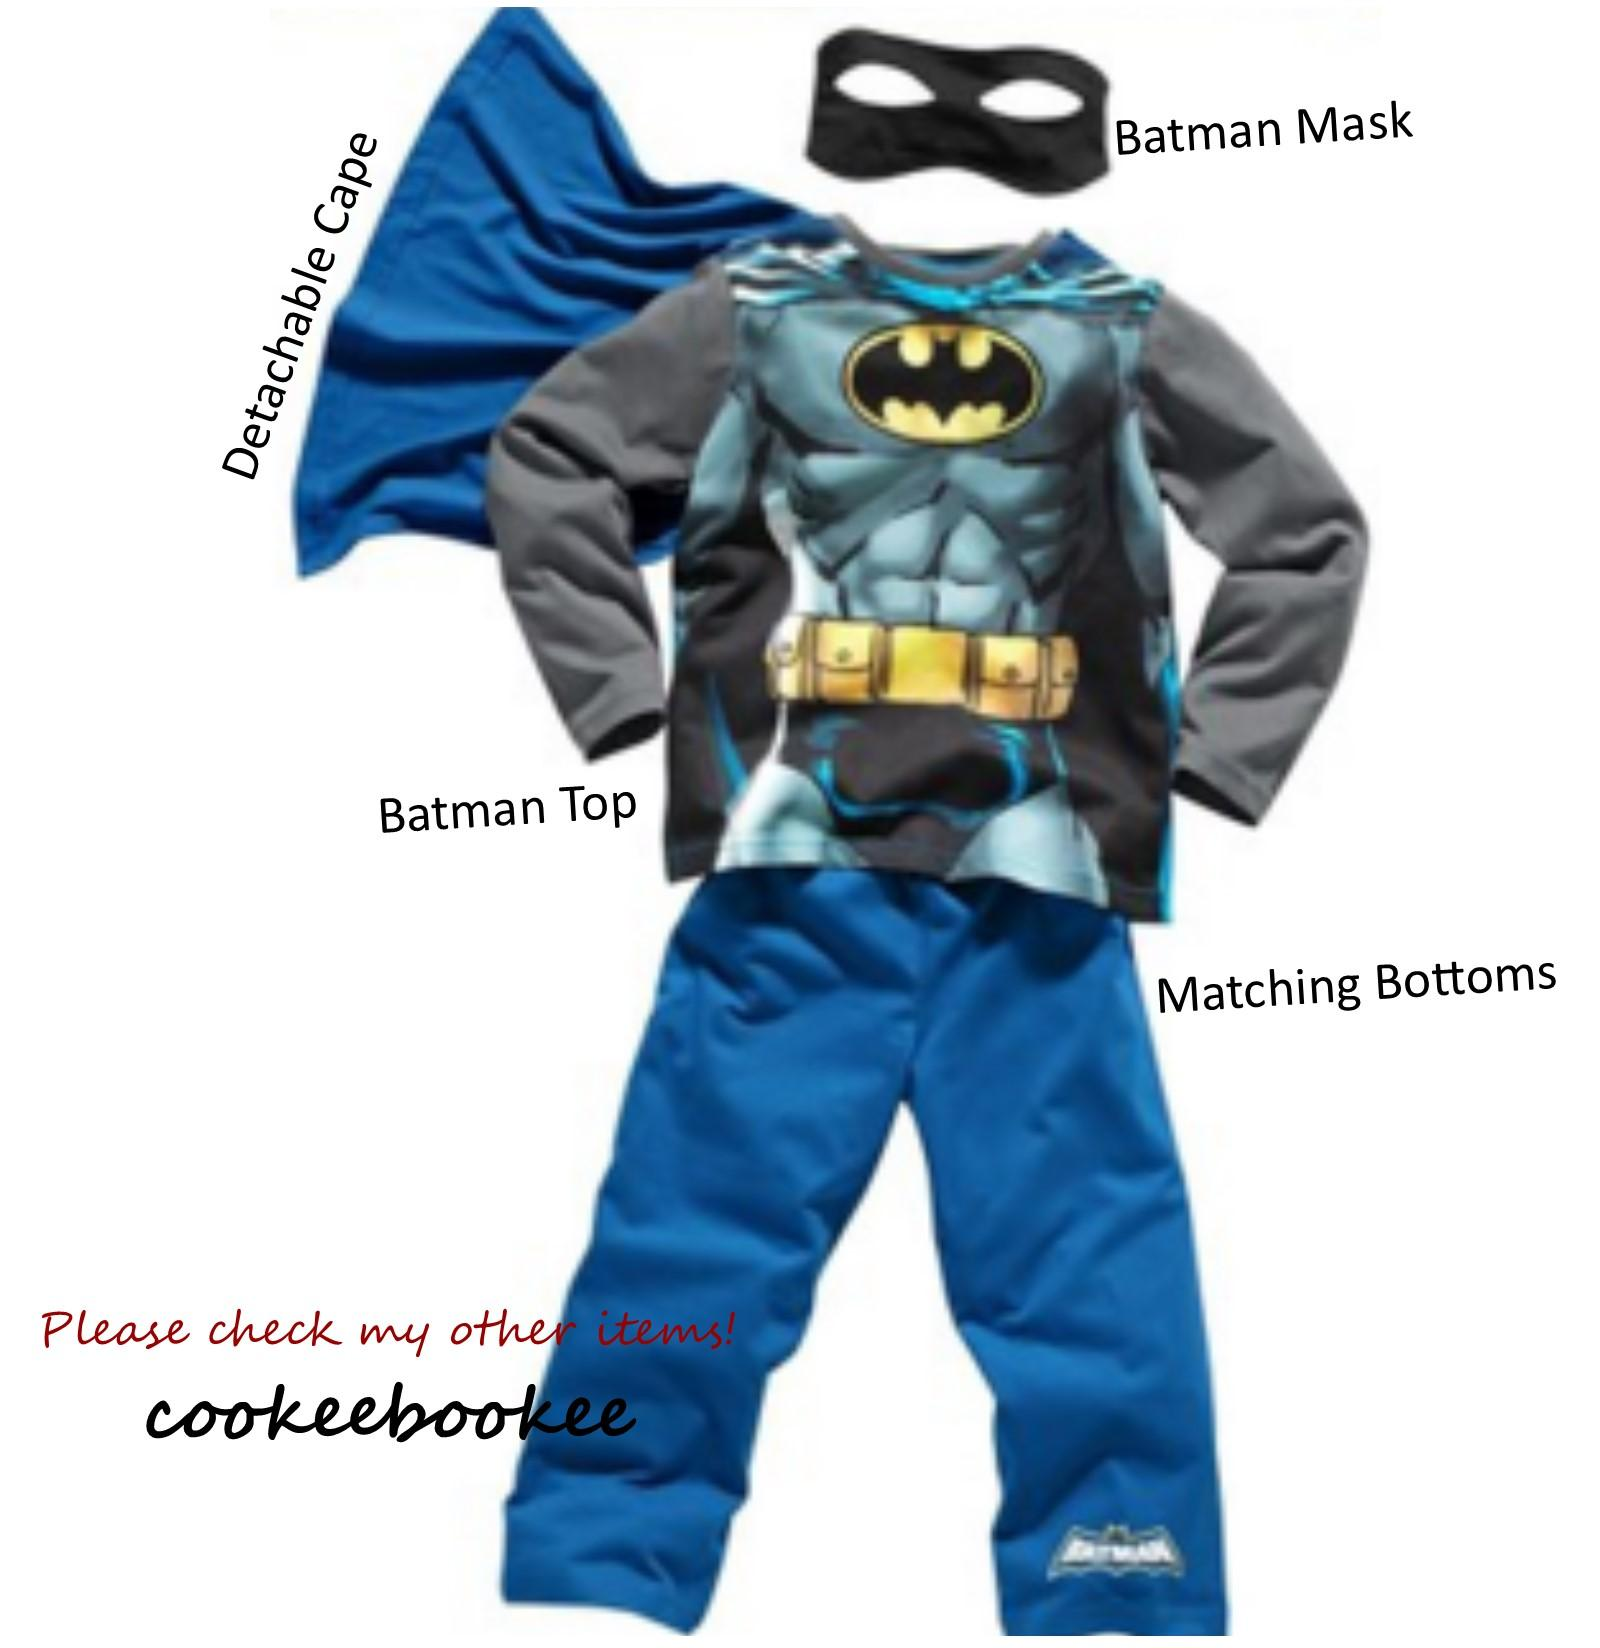 64fd4f33269 BATMAN COSTUME   Pyjamas   Pajamas COMPLETE GIFT SET   Long sleeve top  shirt   Pants